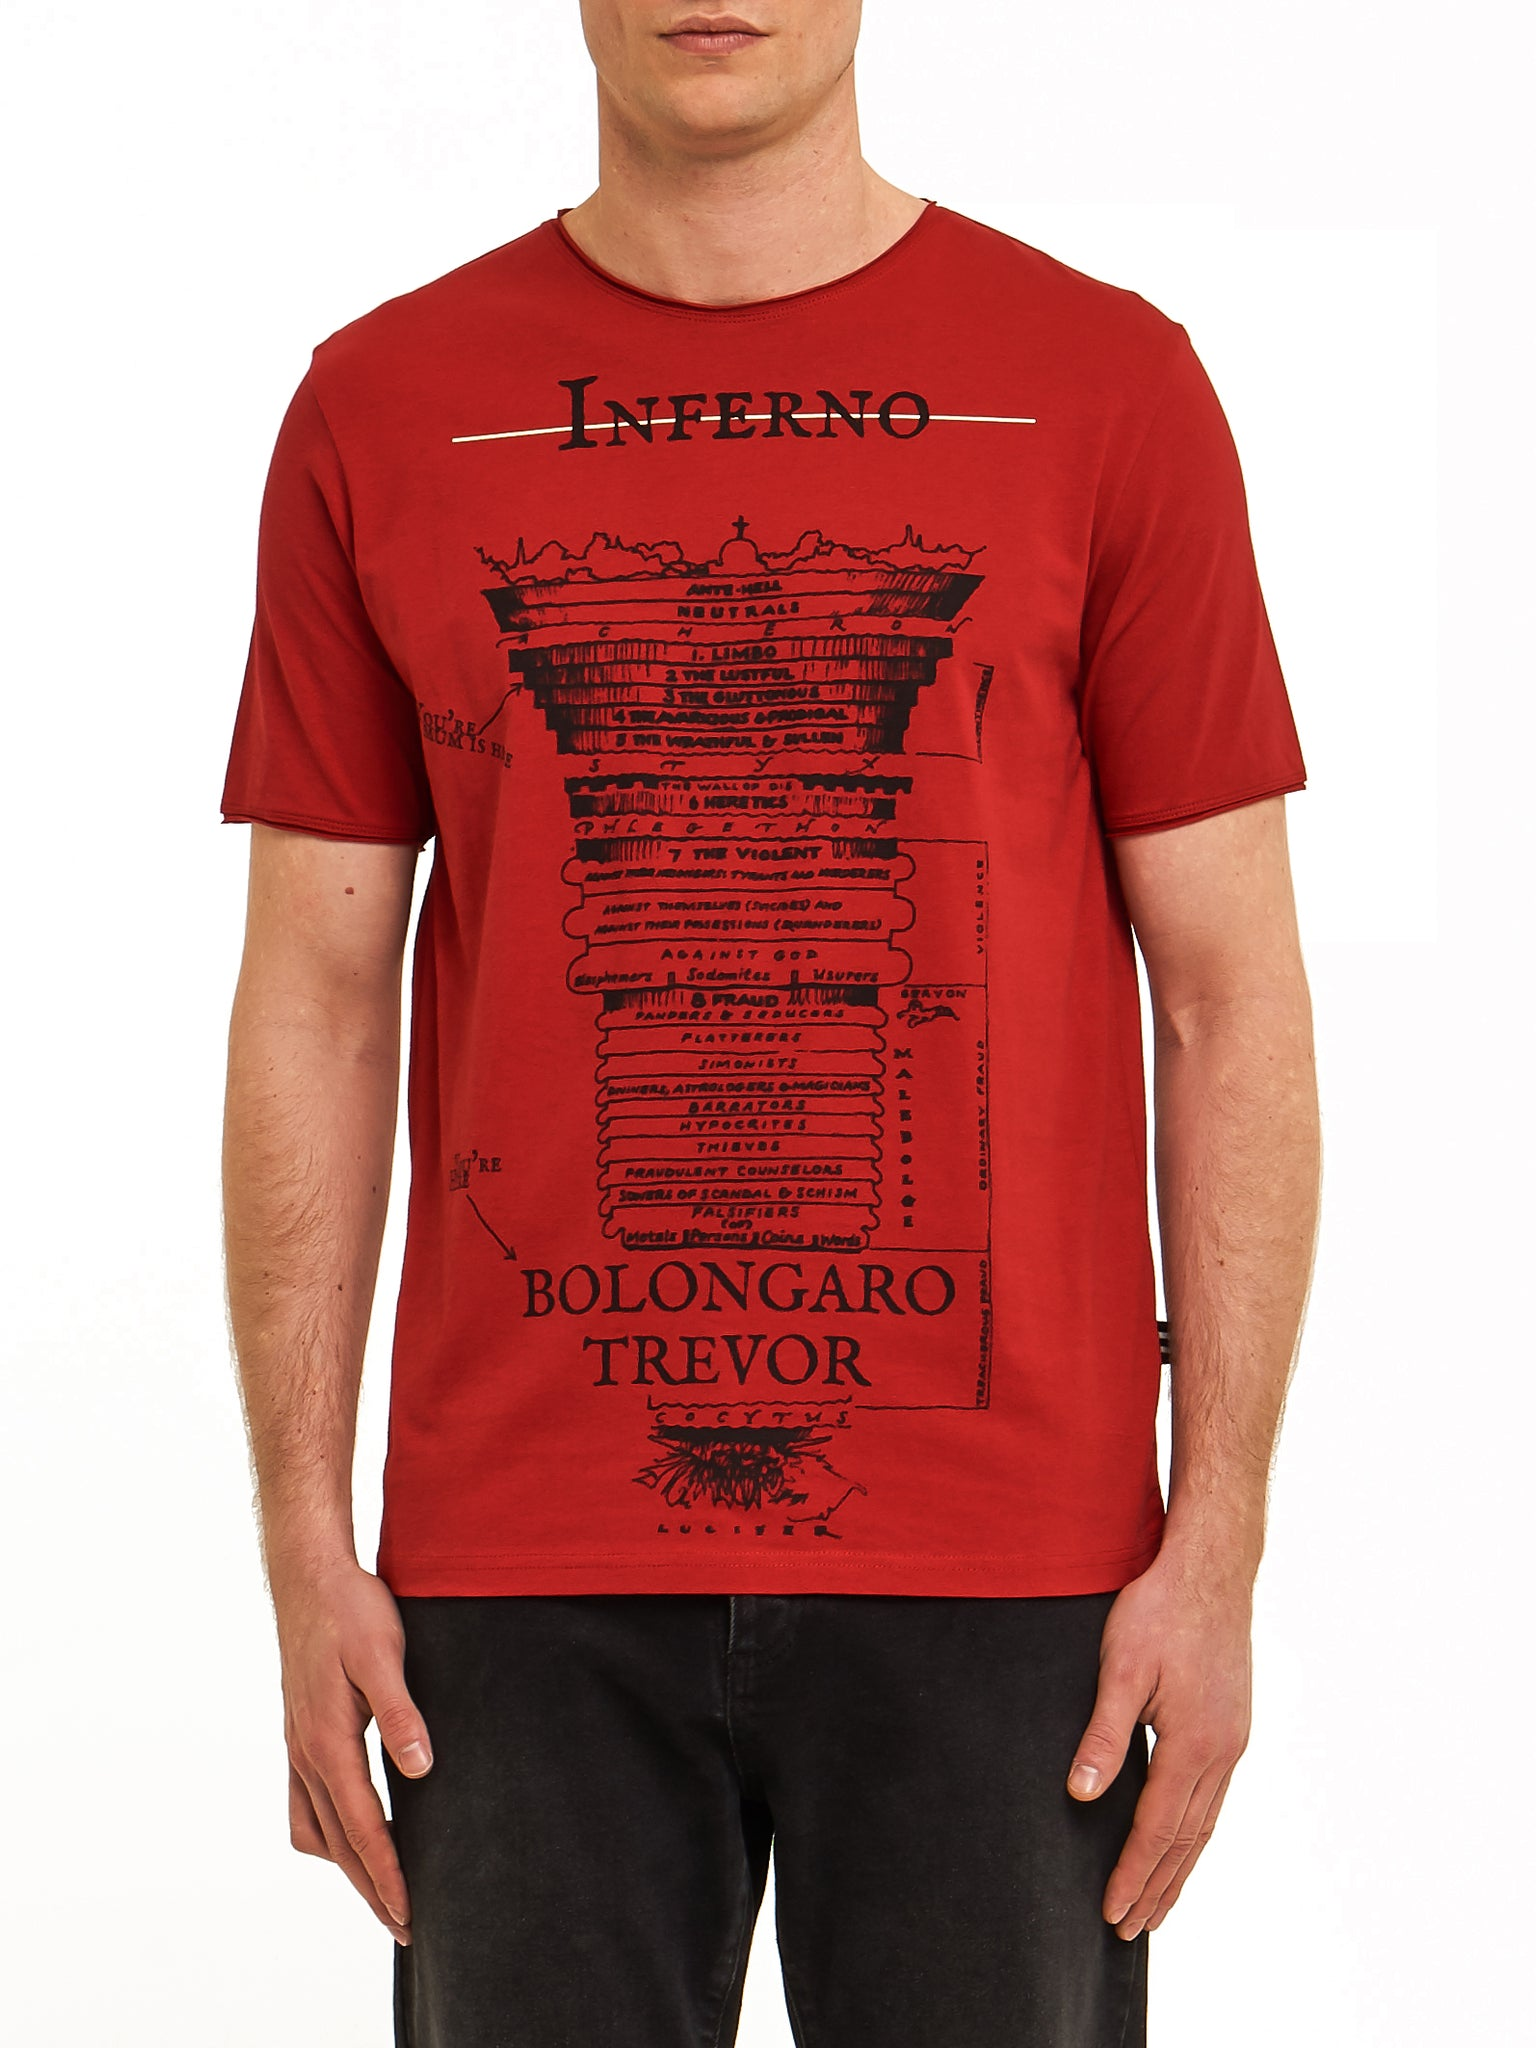 Inferno Tee - Red